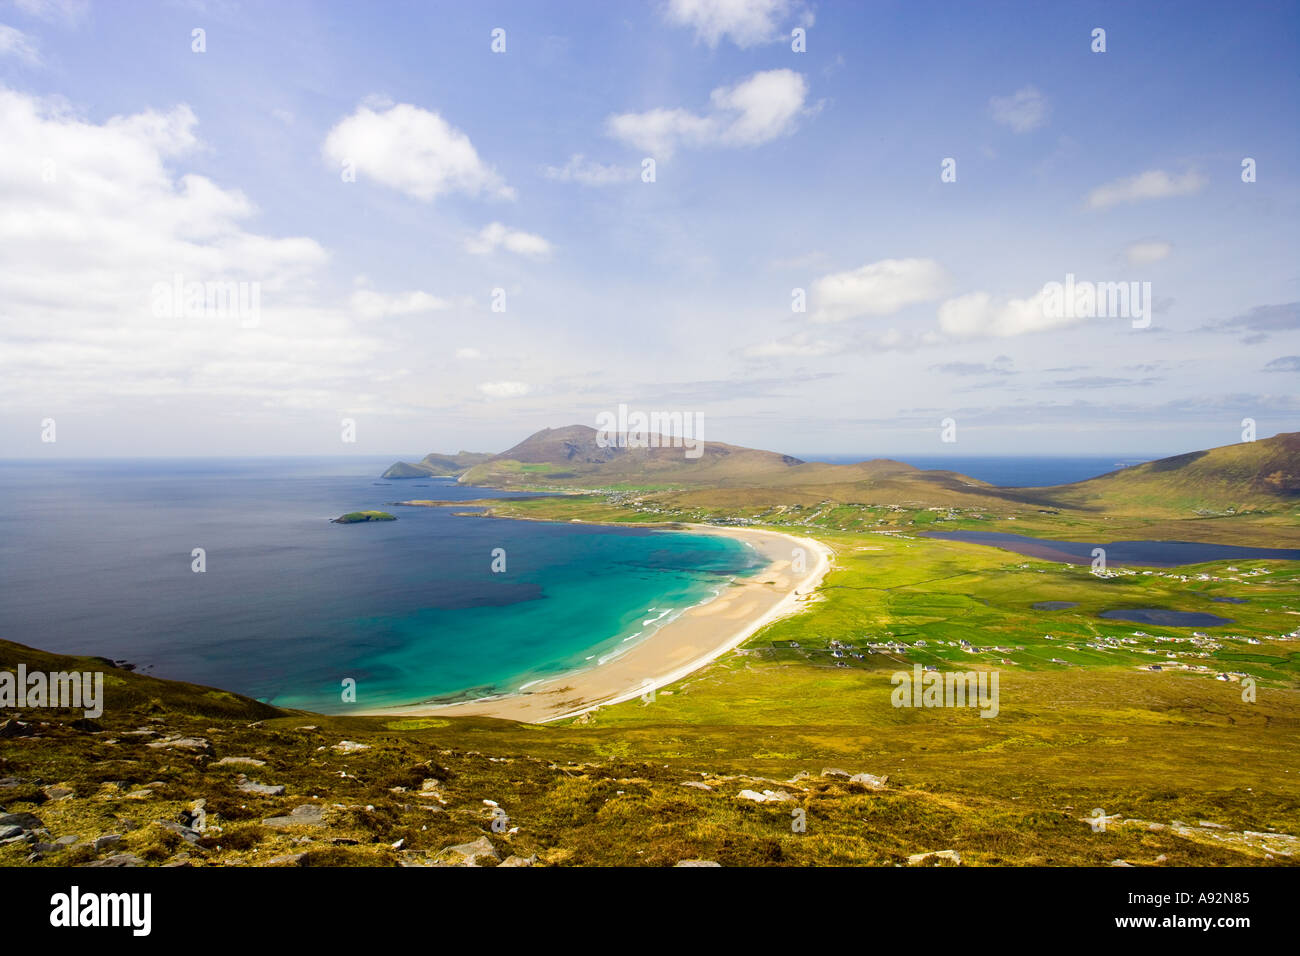 Keel Beach viewed from Moytoge Head Achill Island County Mayo Eire - Stock Image